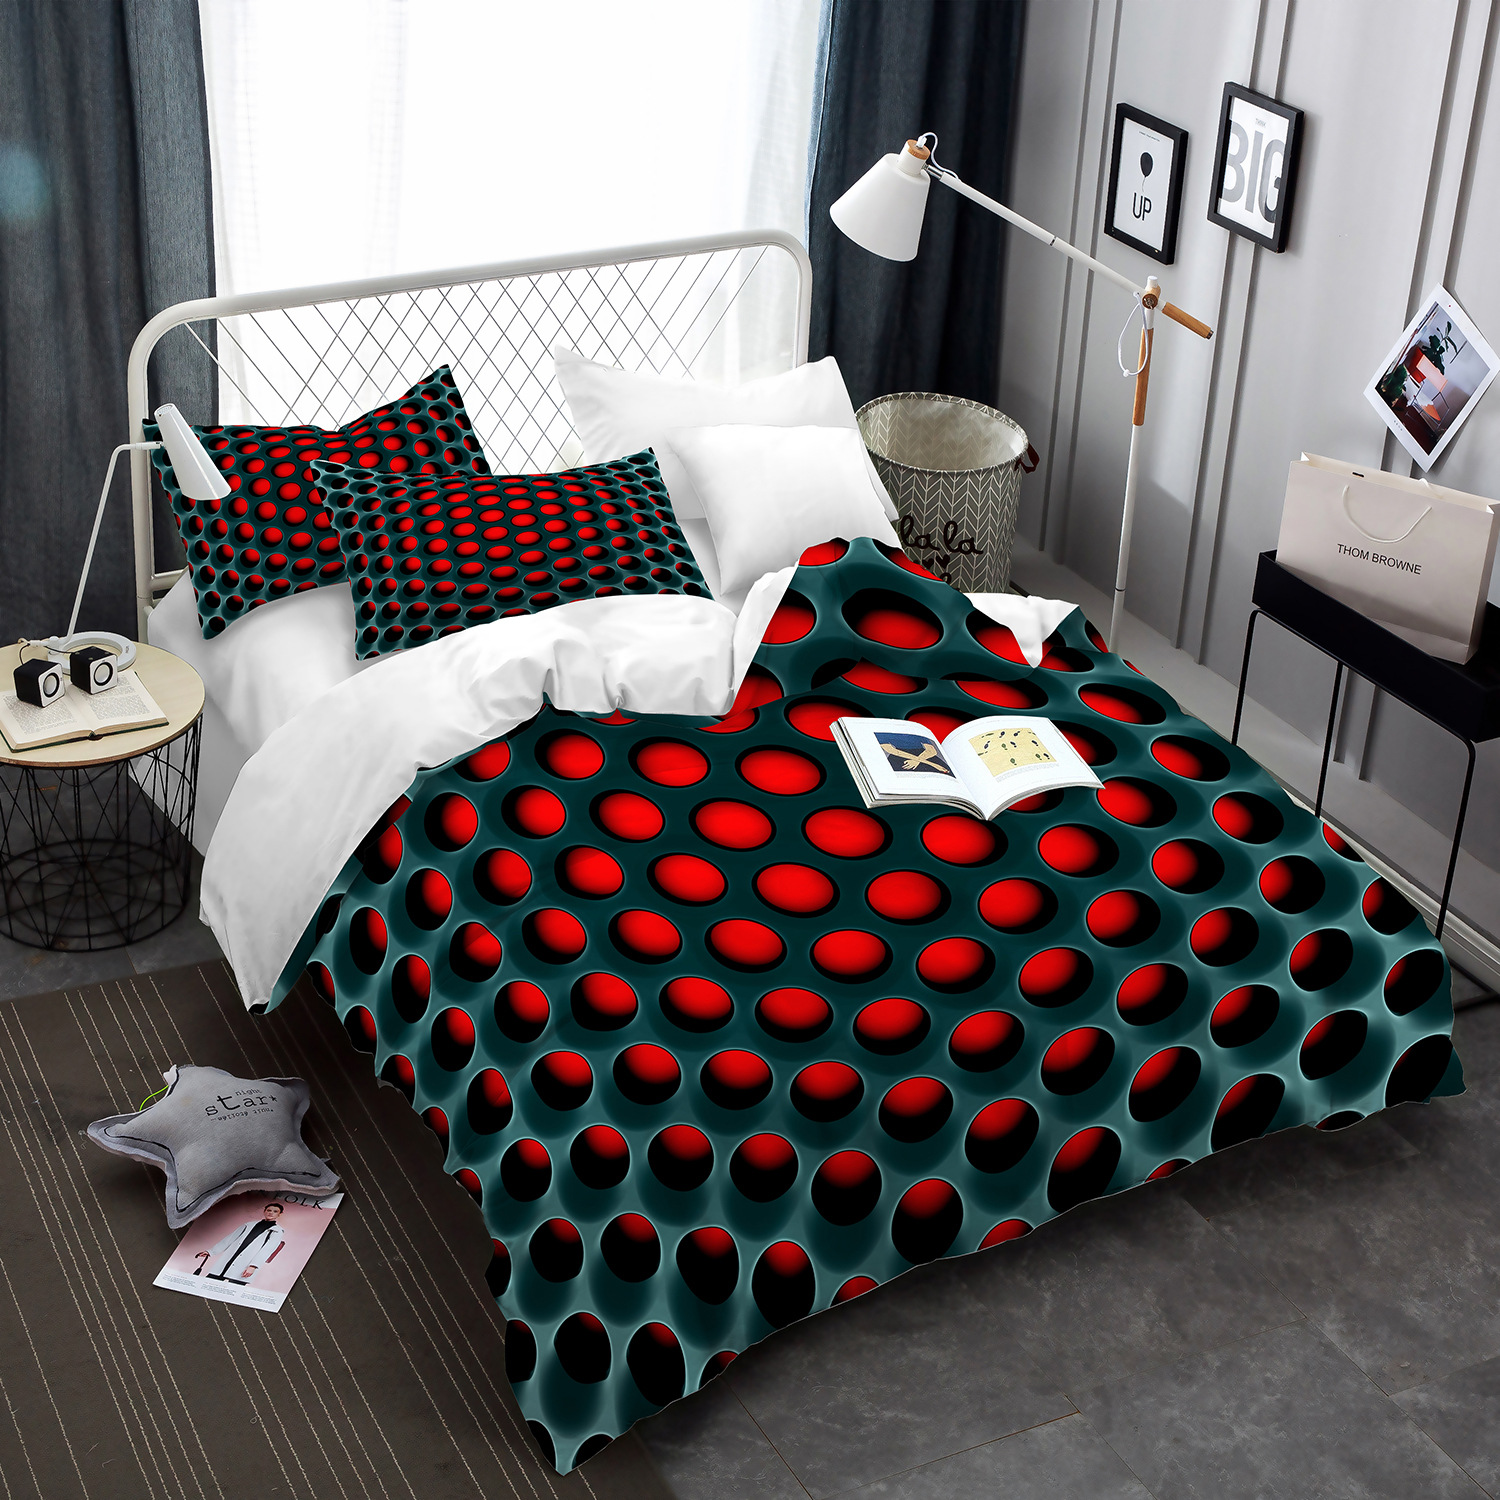 The Best Selling 3D Bedding Set